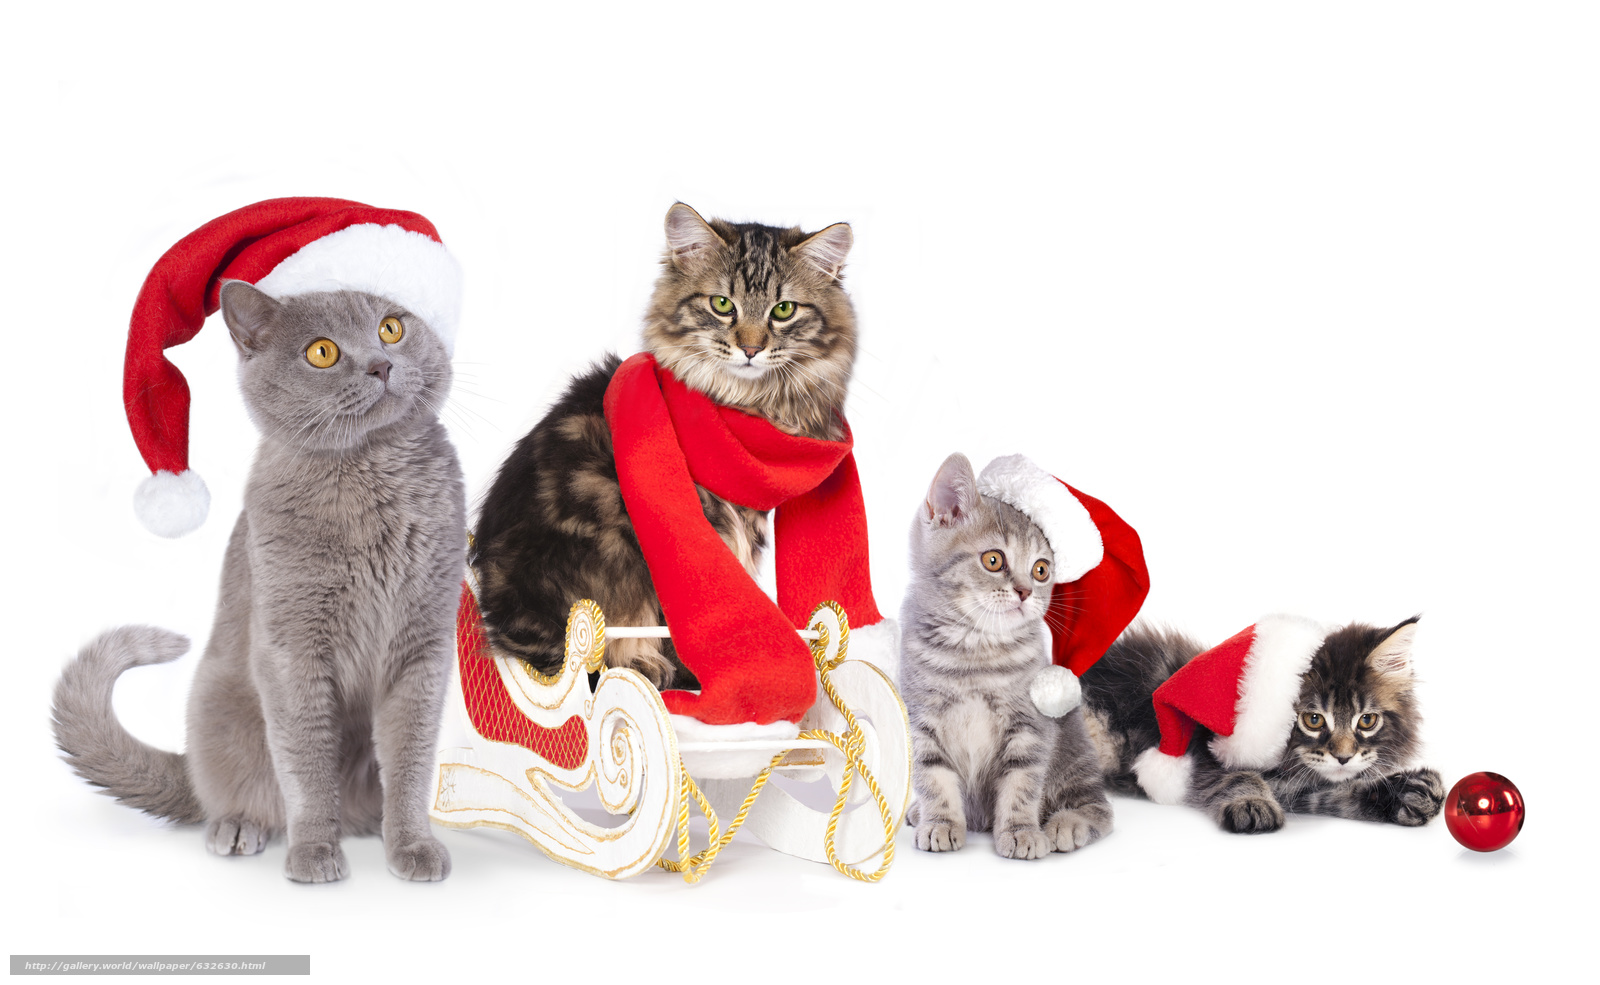 Download Wallpaper Cat Cats Kittens Sledge Free Christmas Cat Dog 1600x985 Wallpaper Teahub Io